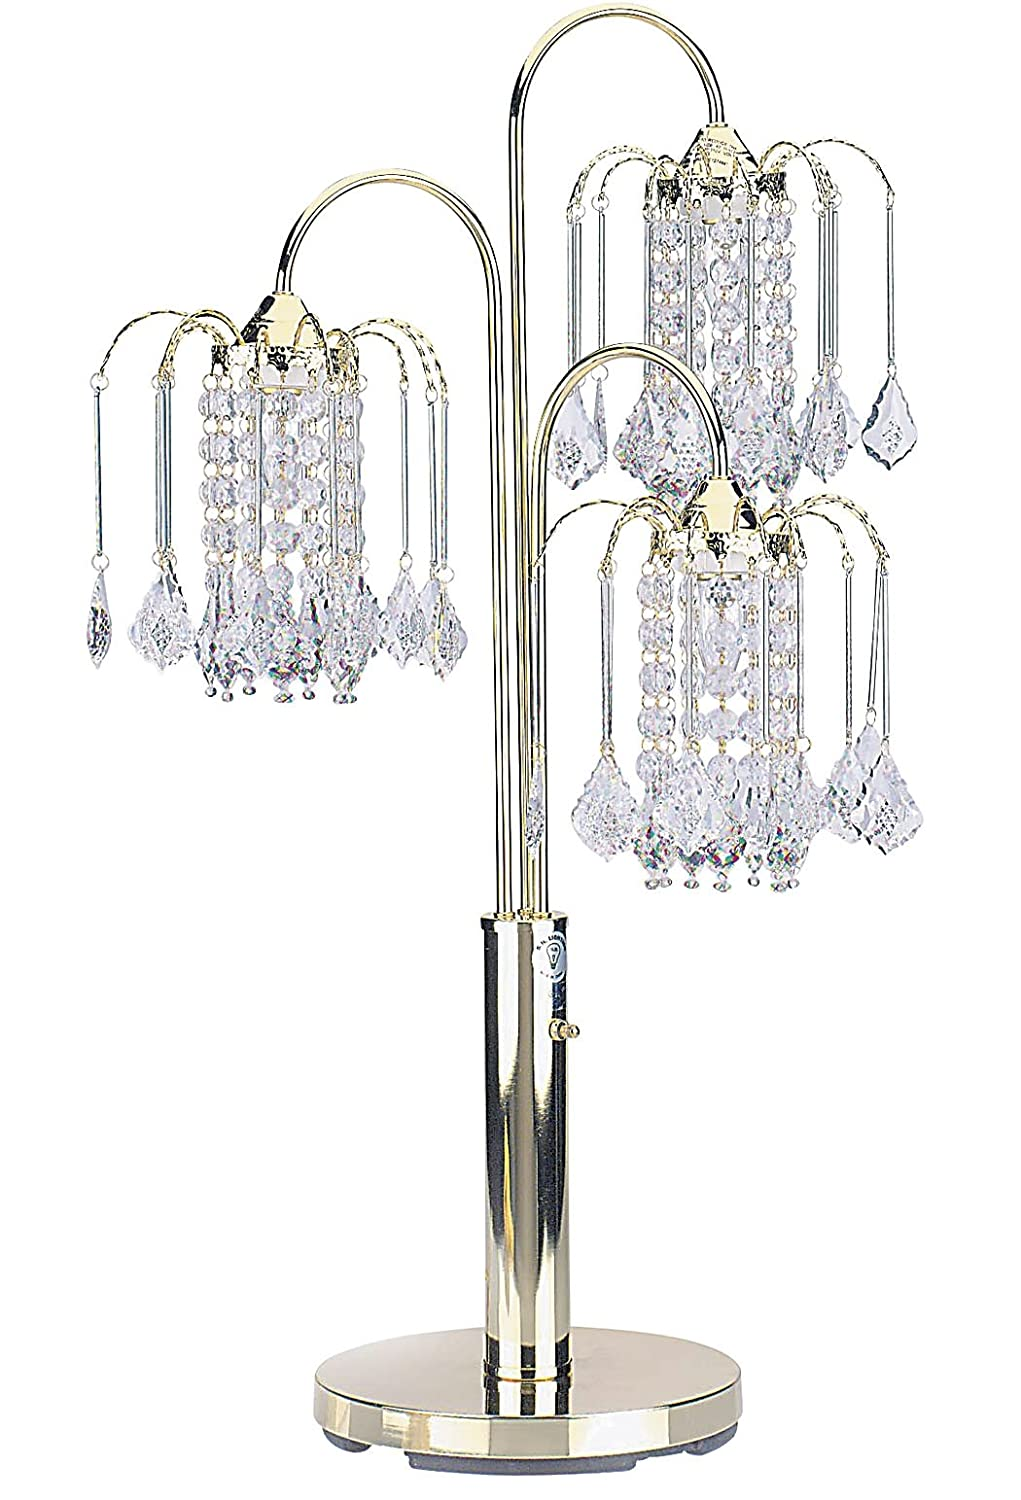 ORE International 716G Table Lamp With Crystal Like Shades, Polished Brass      Amazon.com